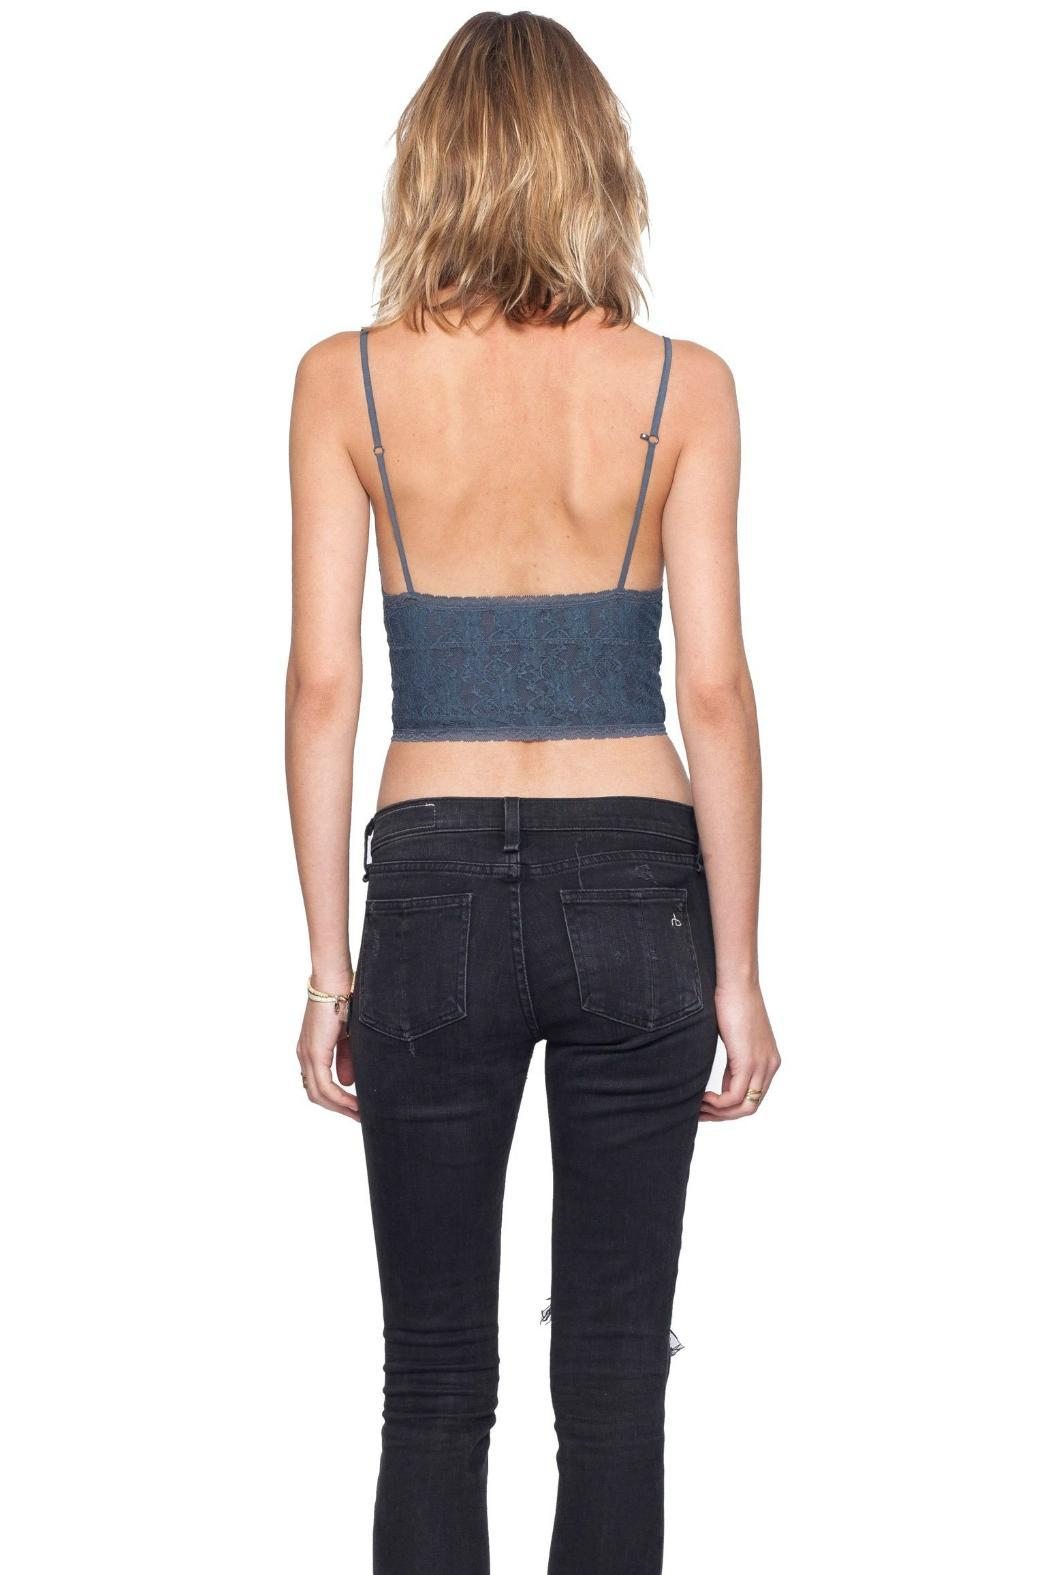 Gentle Fawn Gray Pulse Bralette - Back Cropped Image